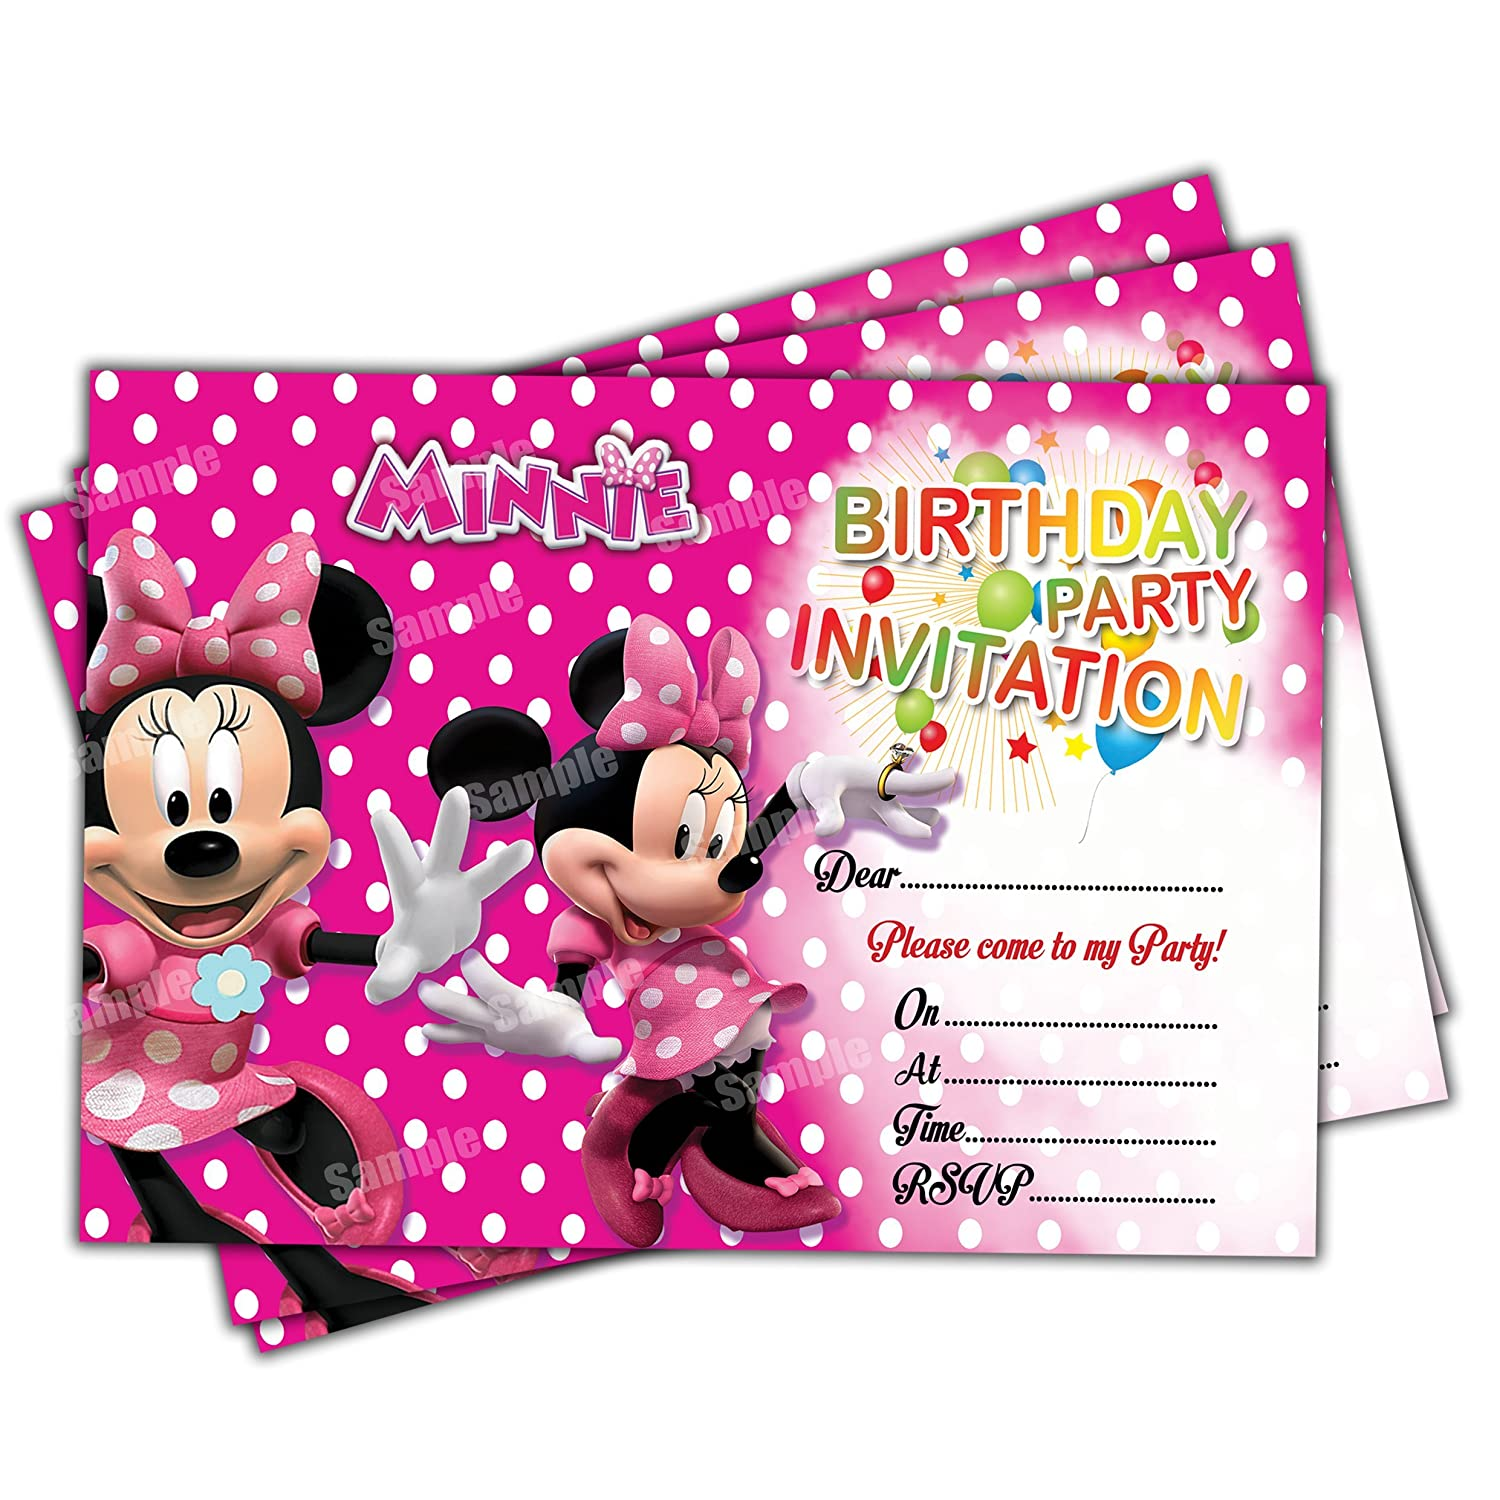 20 x Minnie Mouse Kids Birthday Party Invitations Invites Cards Quality Girls Birthday Invitations